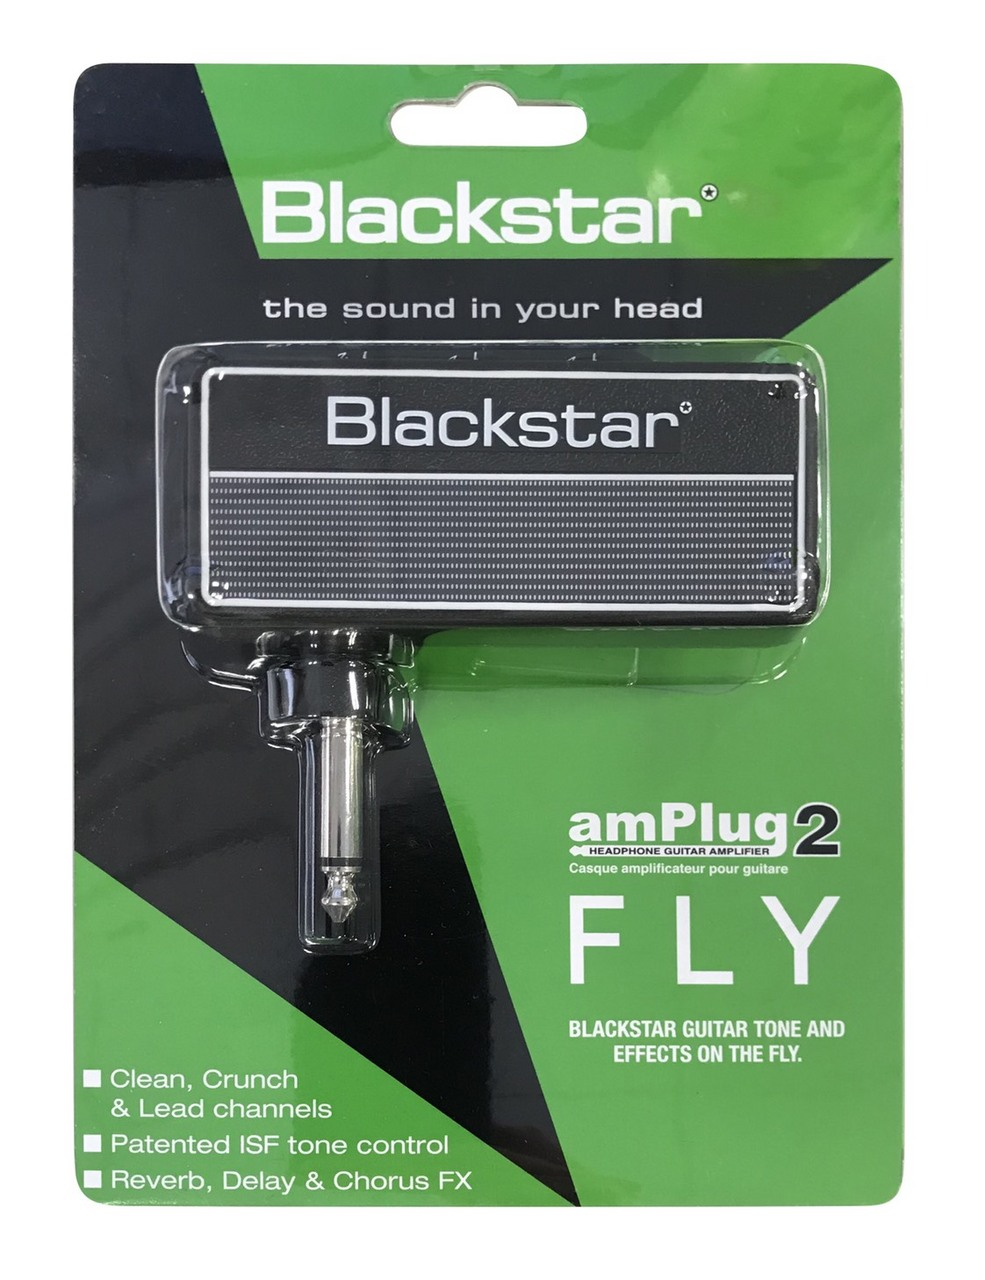 Blackstar Amplug 2 Fly AP2-FLY-G [for electric guitars headphone amplifier]